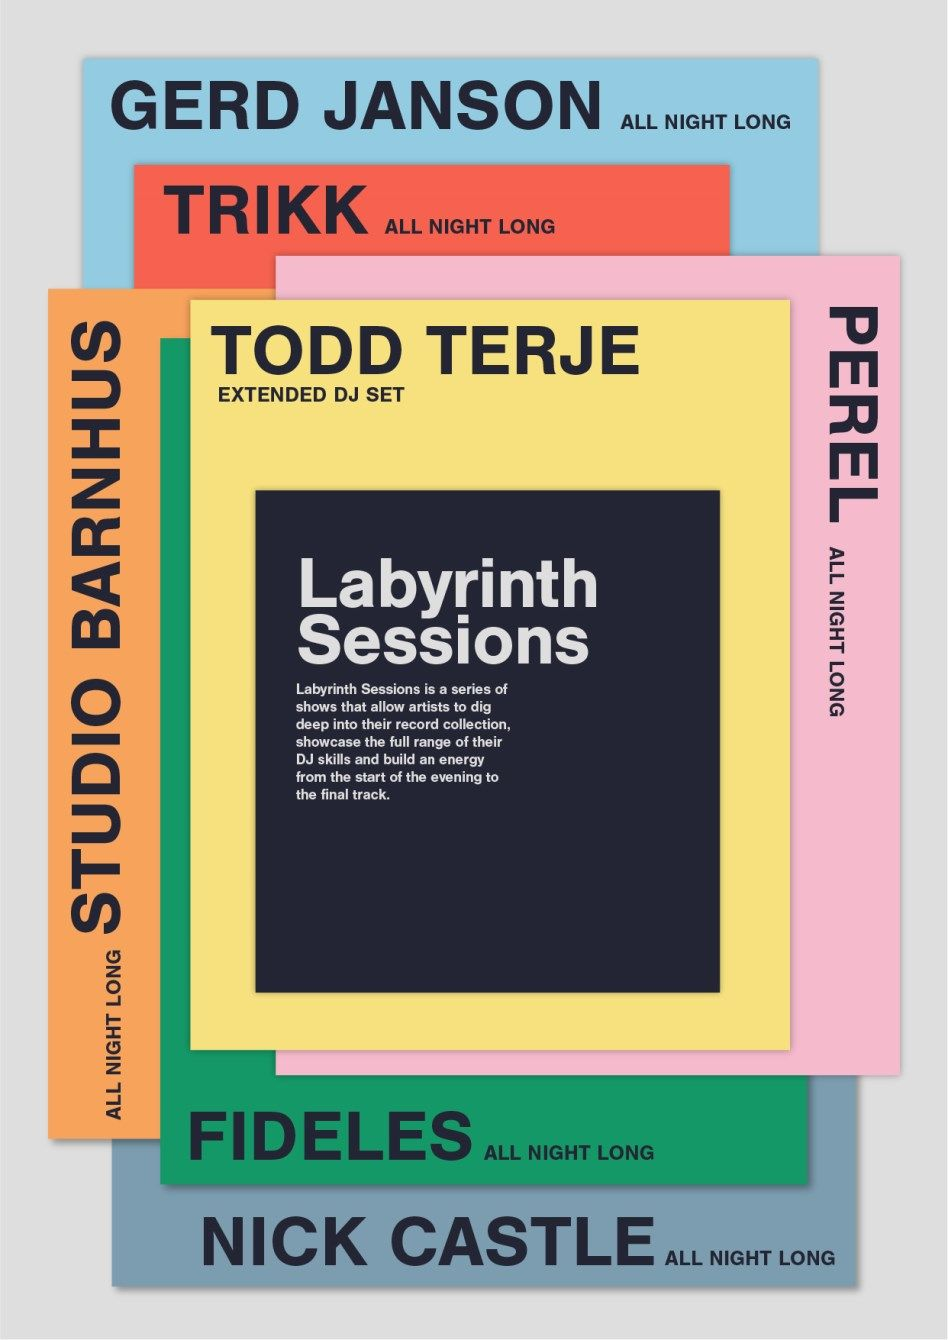 Labyrinth Announces Seven 'Sessions Series' Shows across London w/ Axel Boman, Gerd Janson, Todd Terje